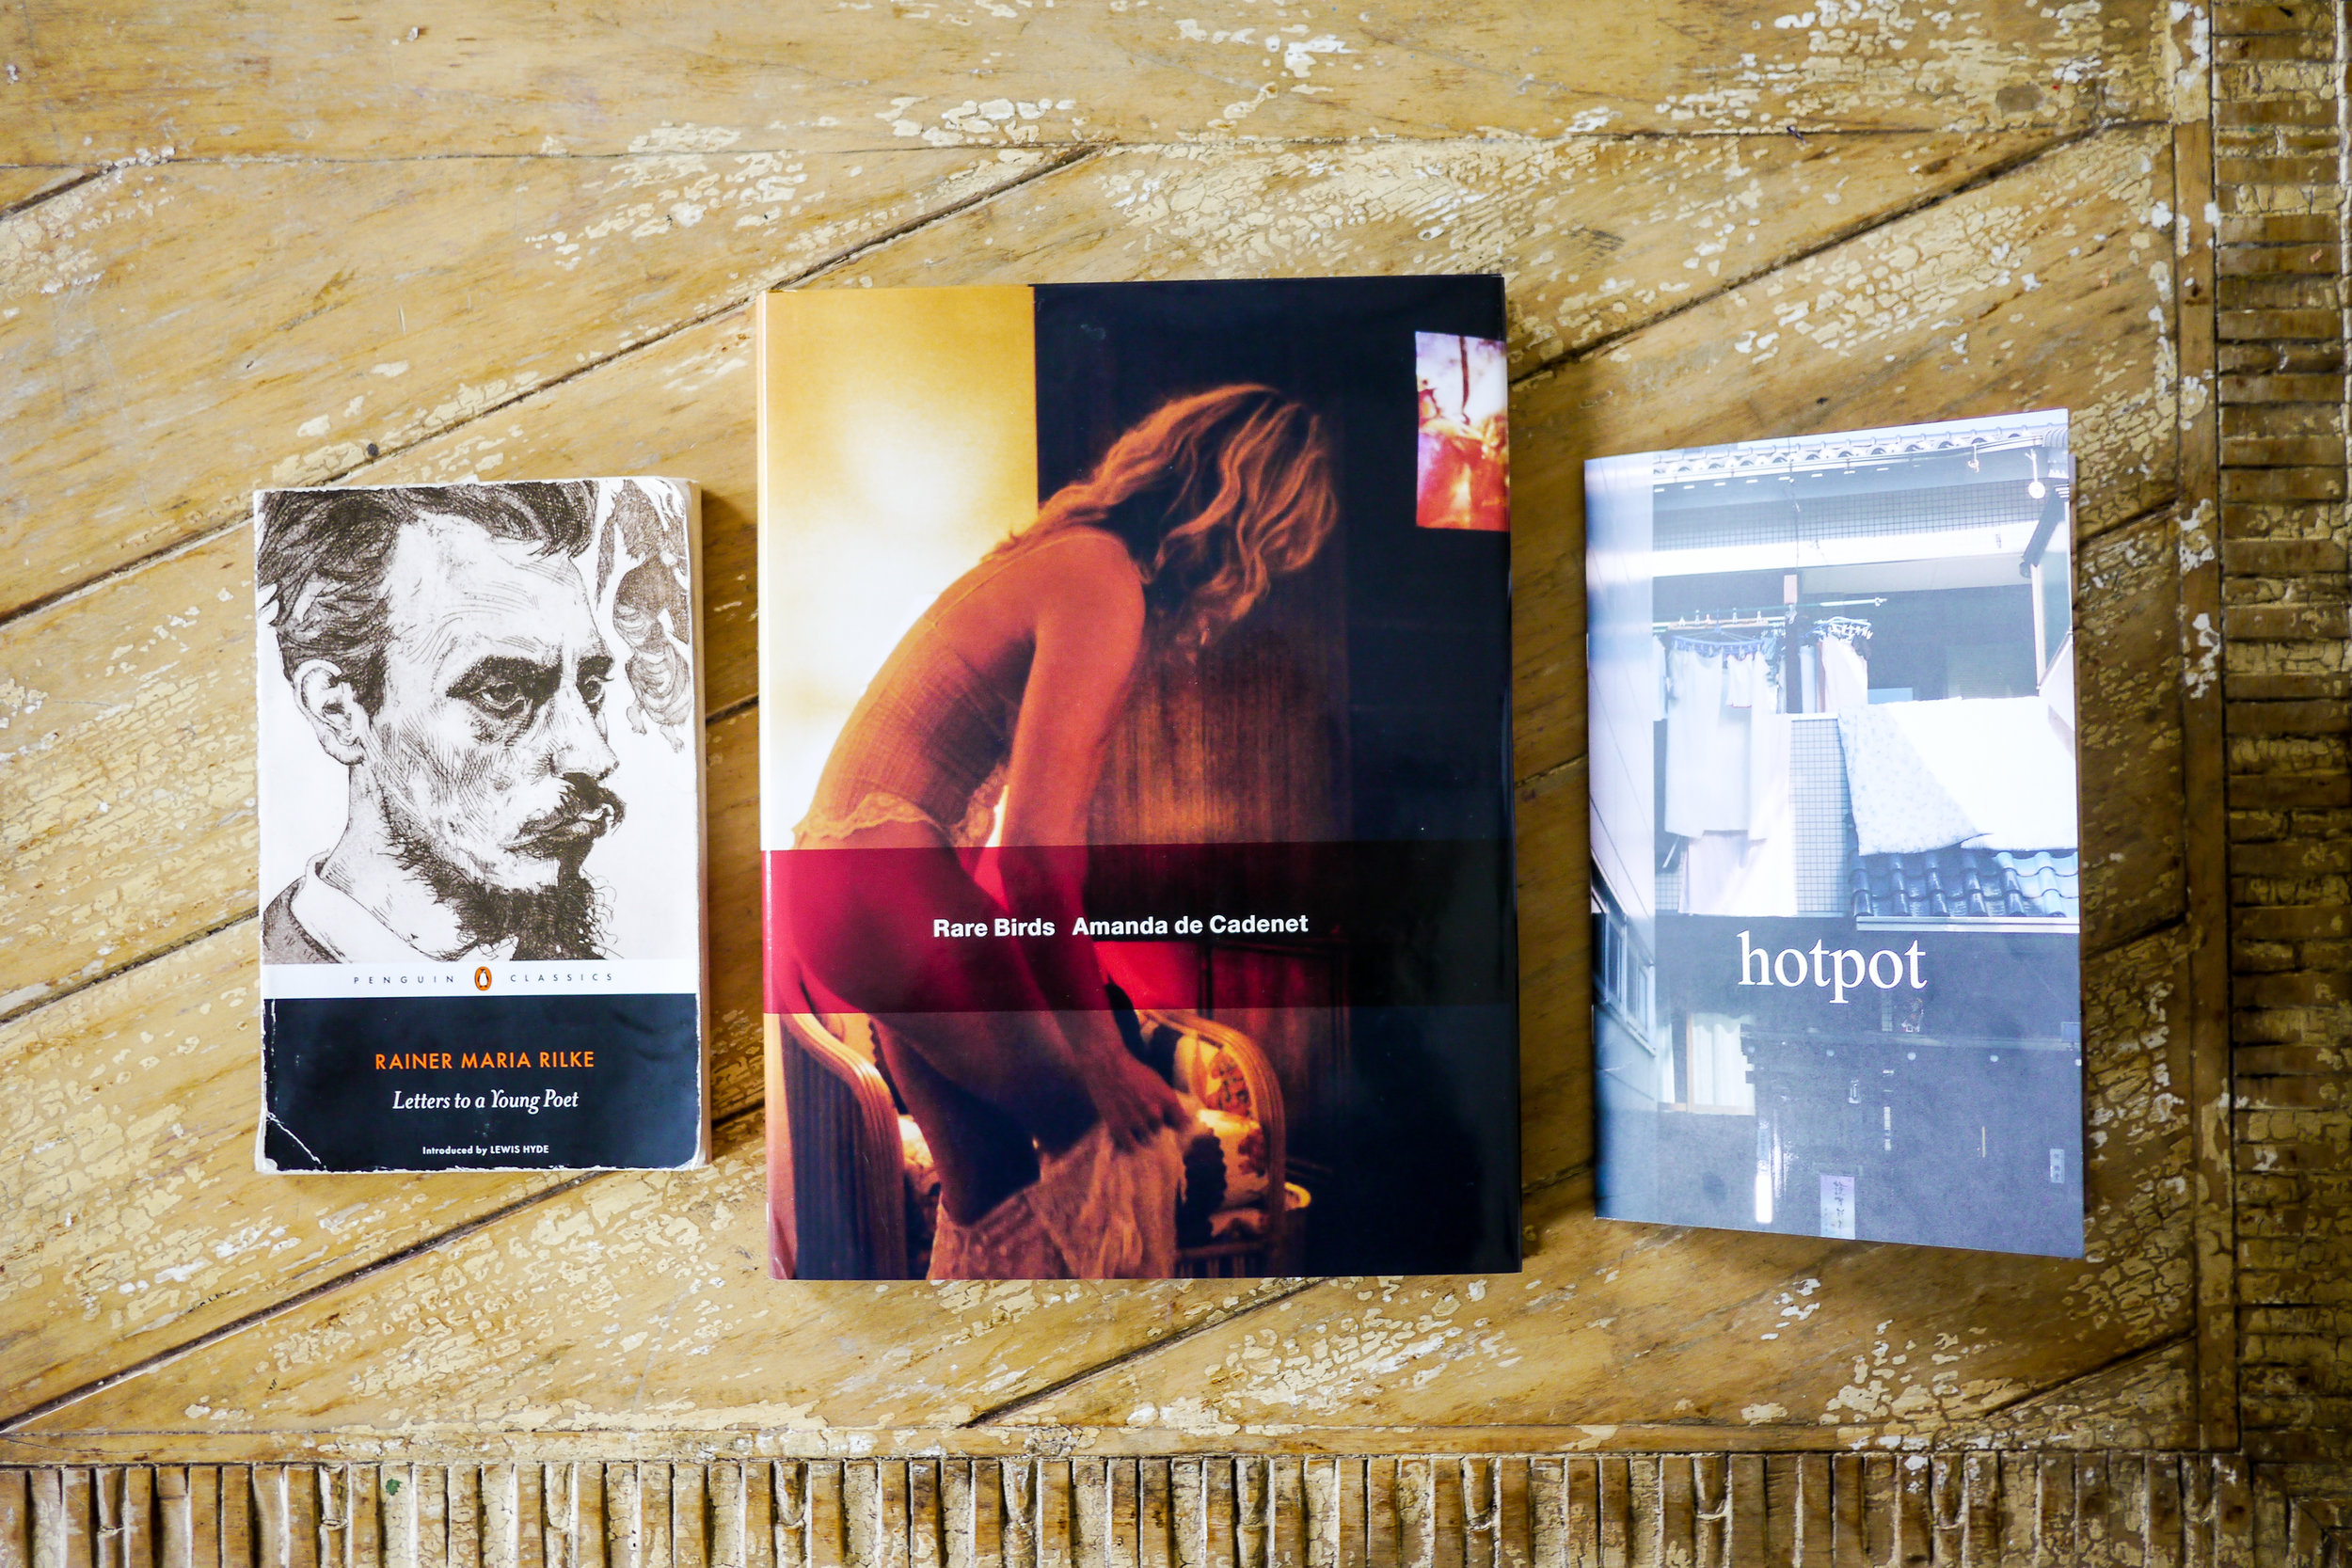 """Bianca's favorite books, and """"   hotpot   ,"""" a photo zine of her work"""